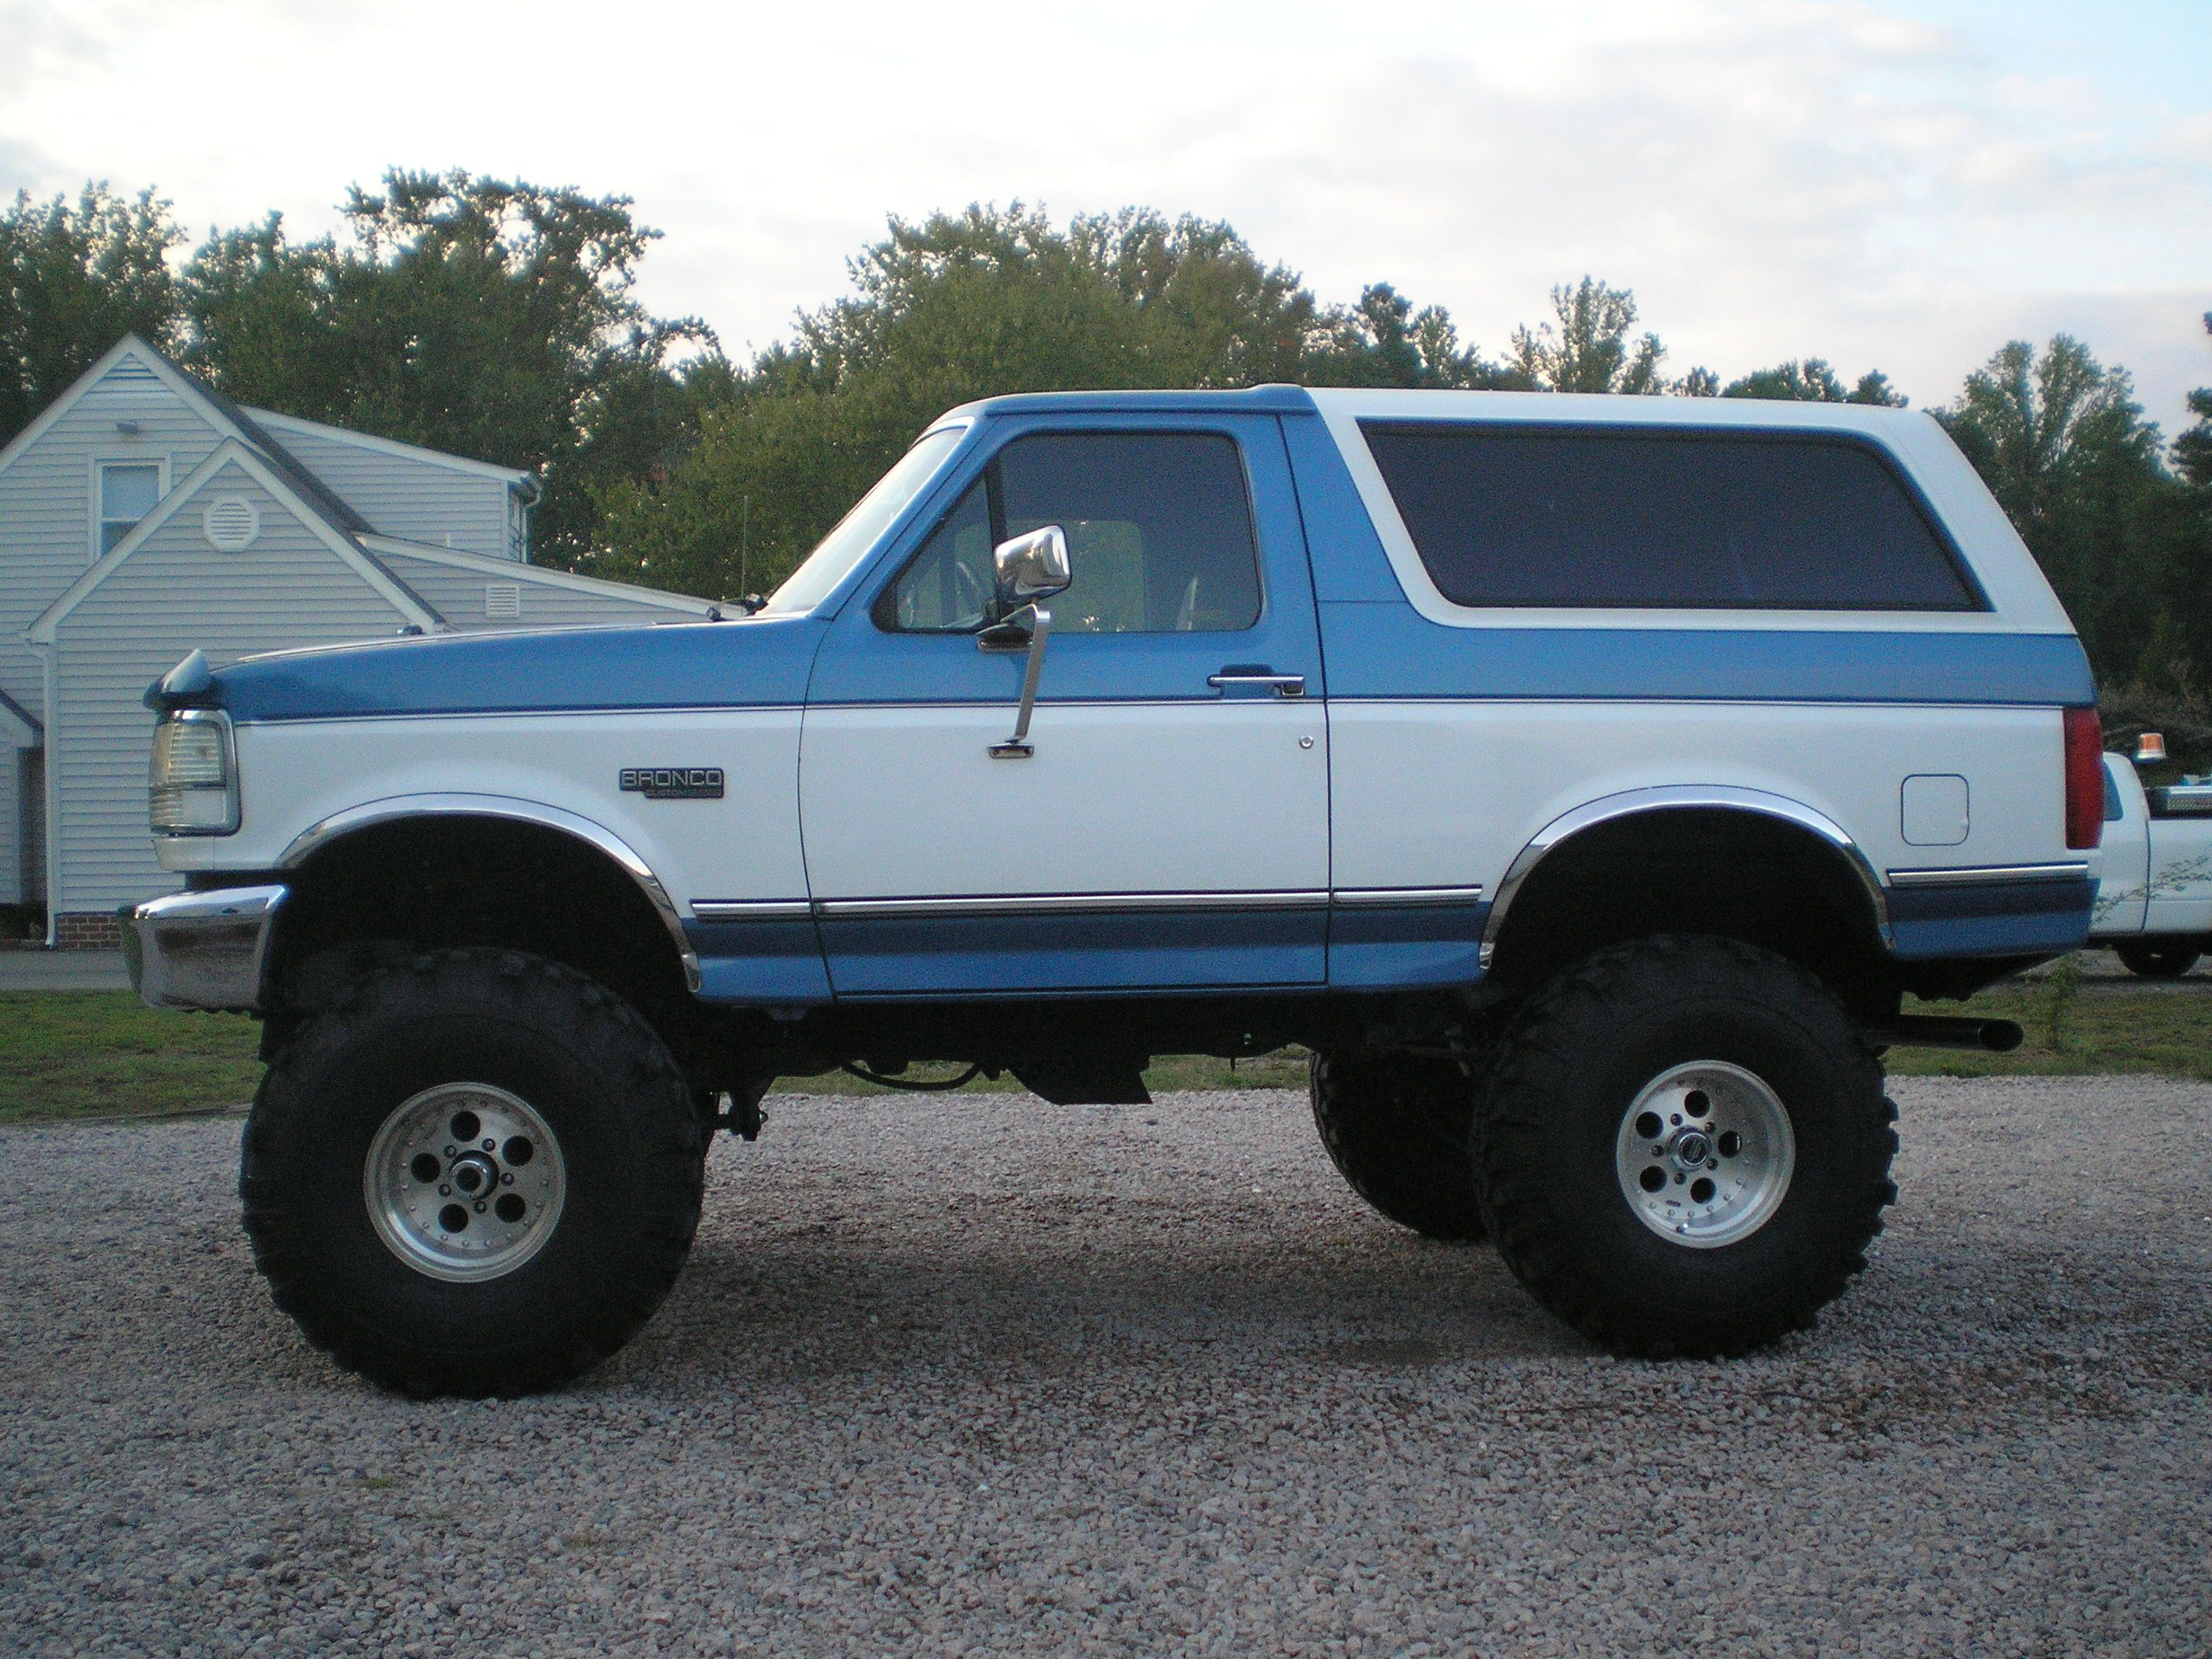 for by pin early cars bronco ford and truck wescott sale trucks pinterest trevor on jeep jeeps broncos